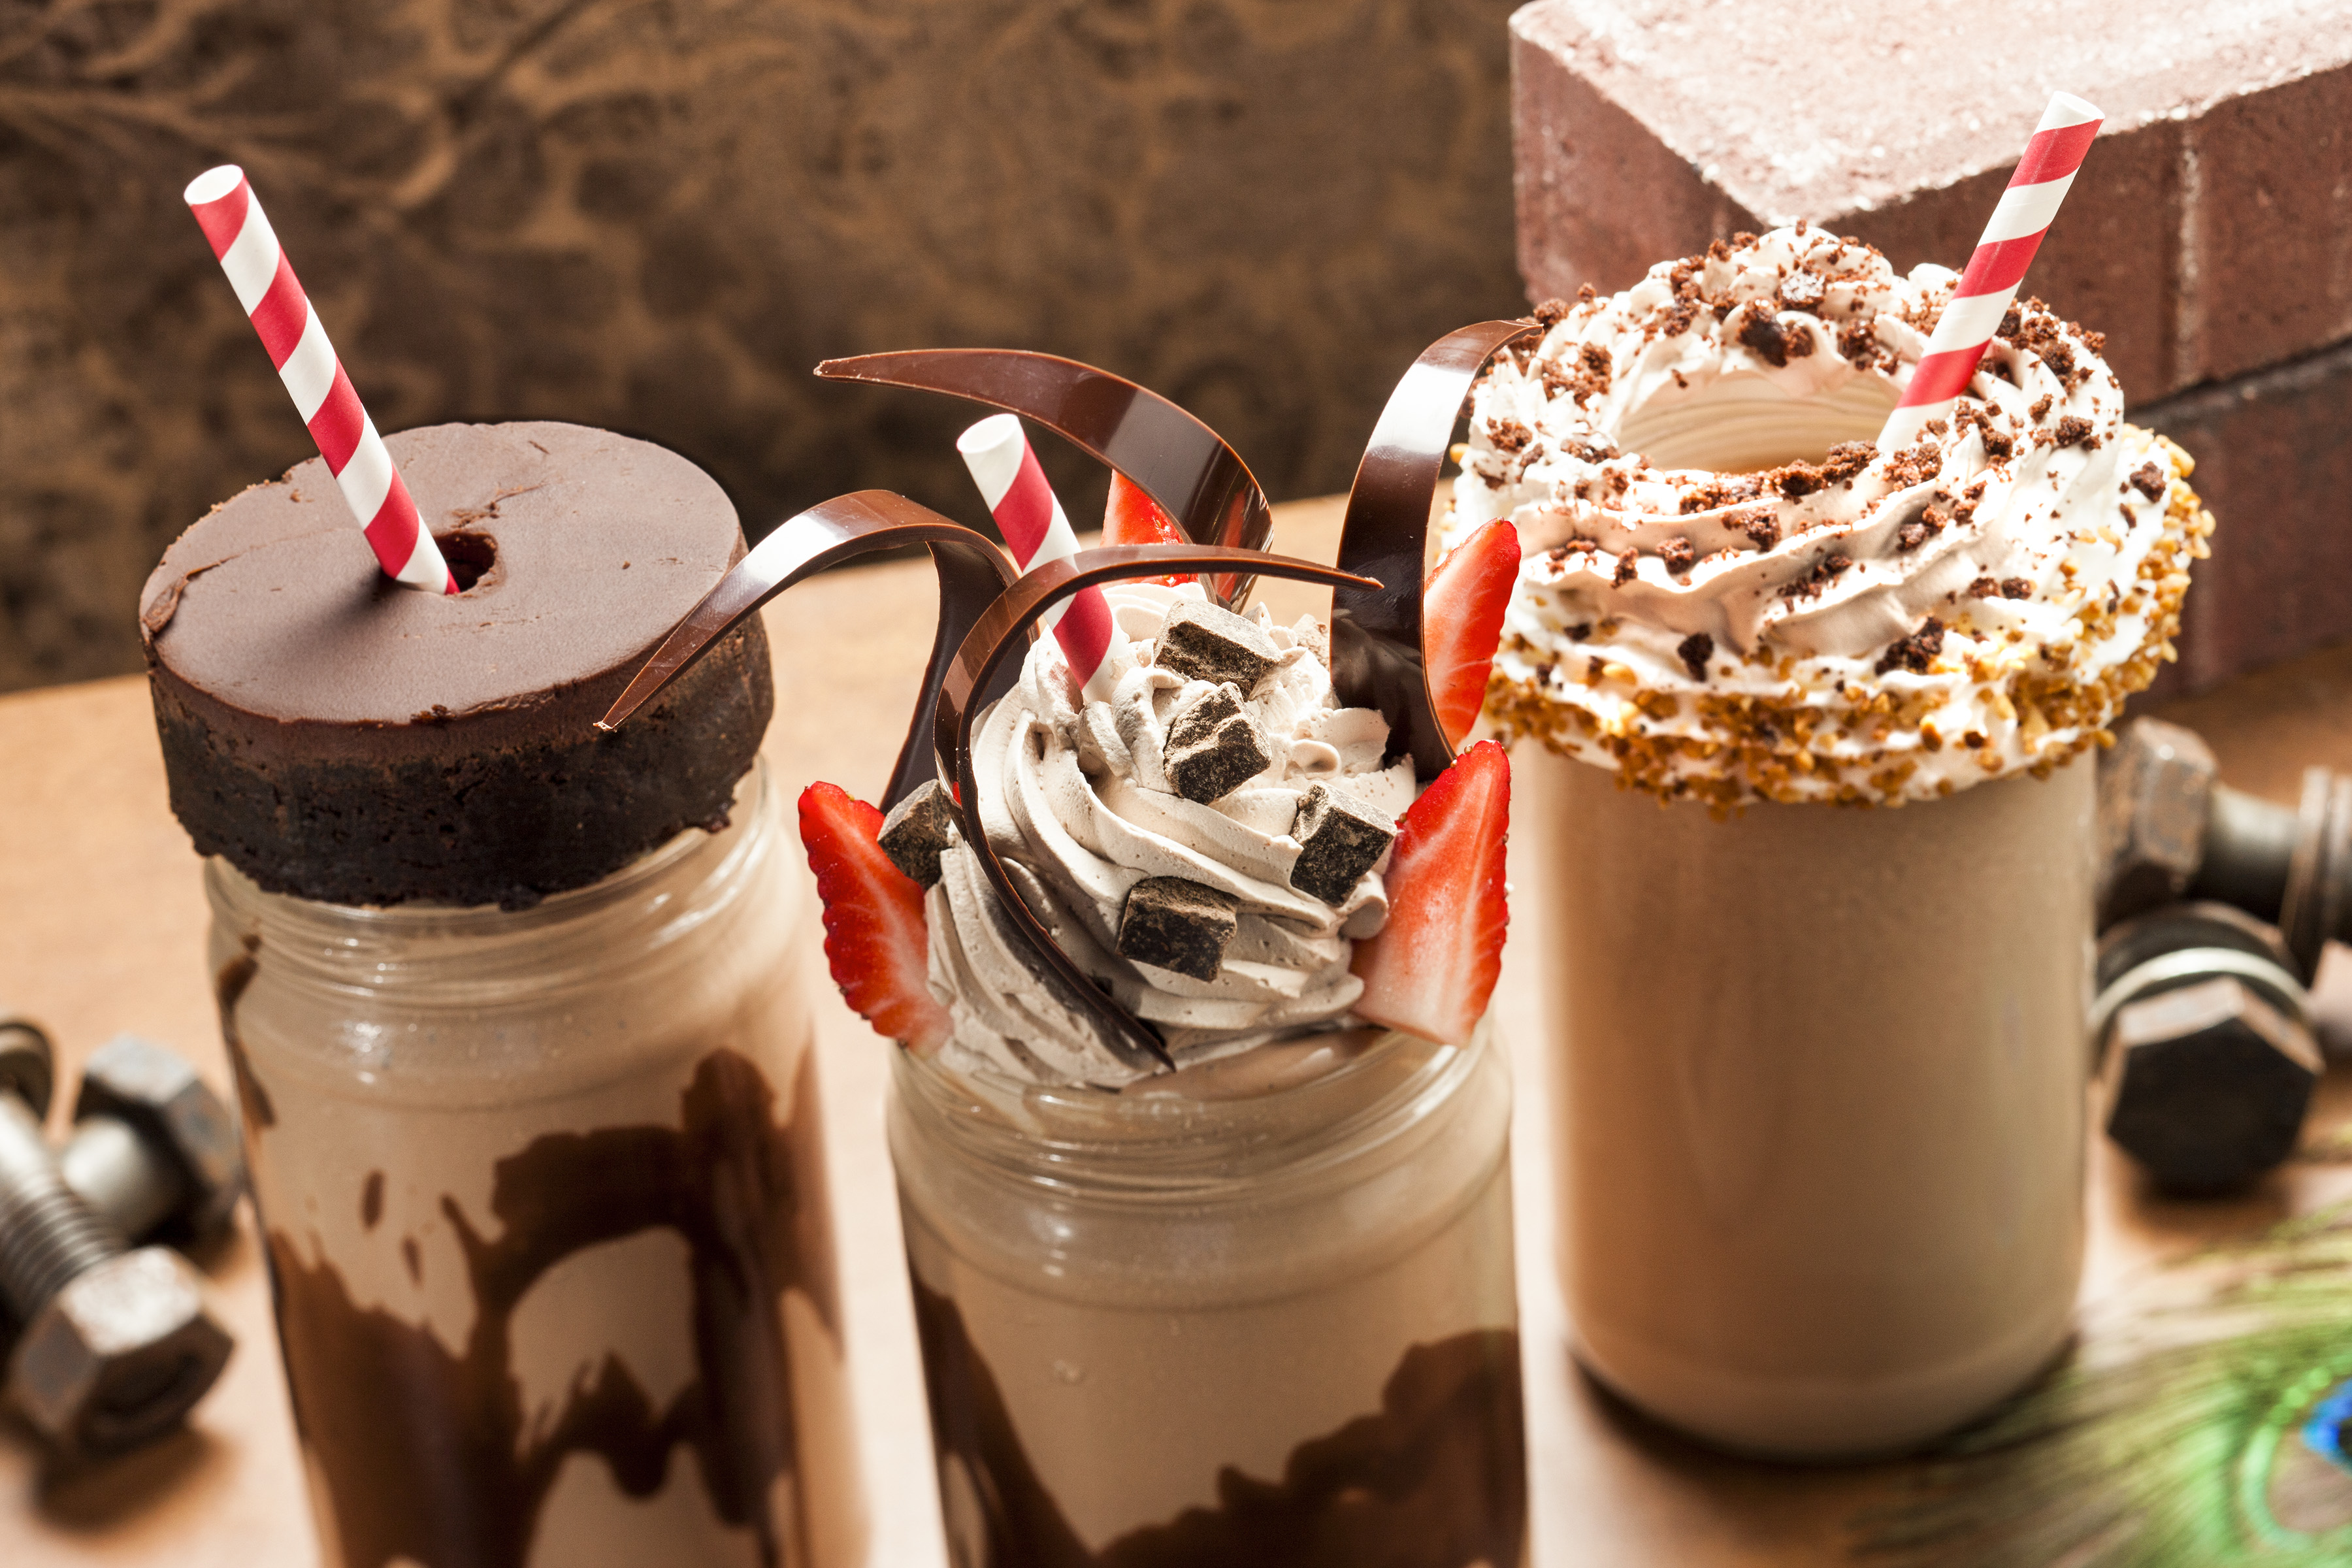 The best places for desserts in Orlando